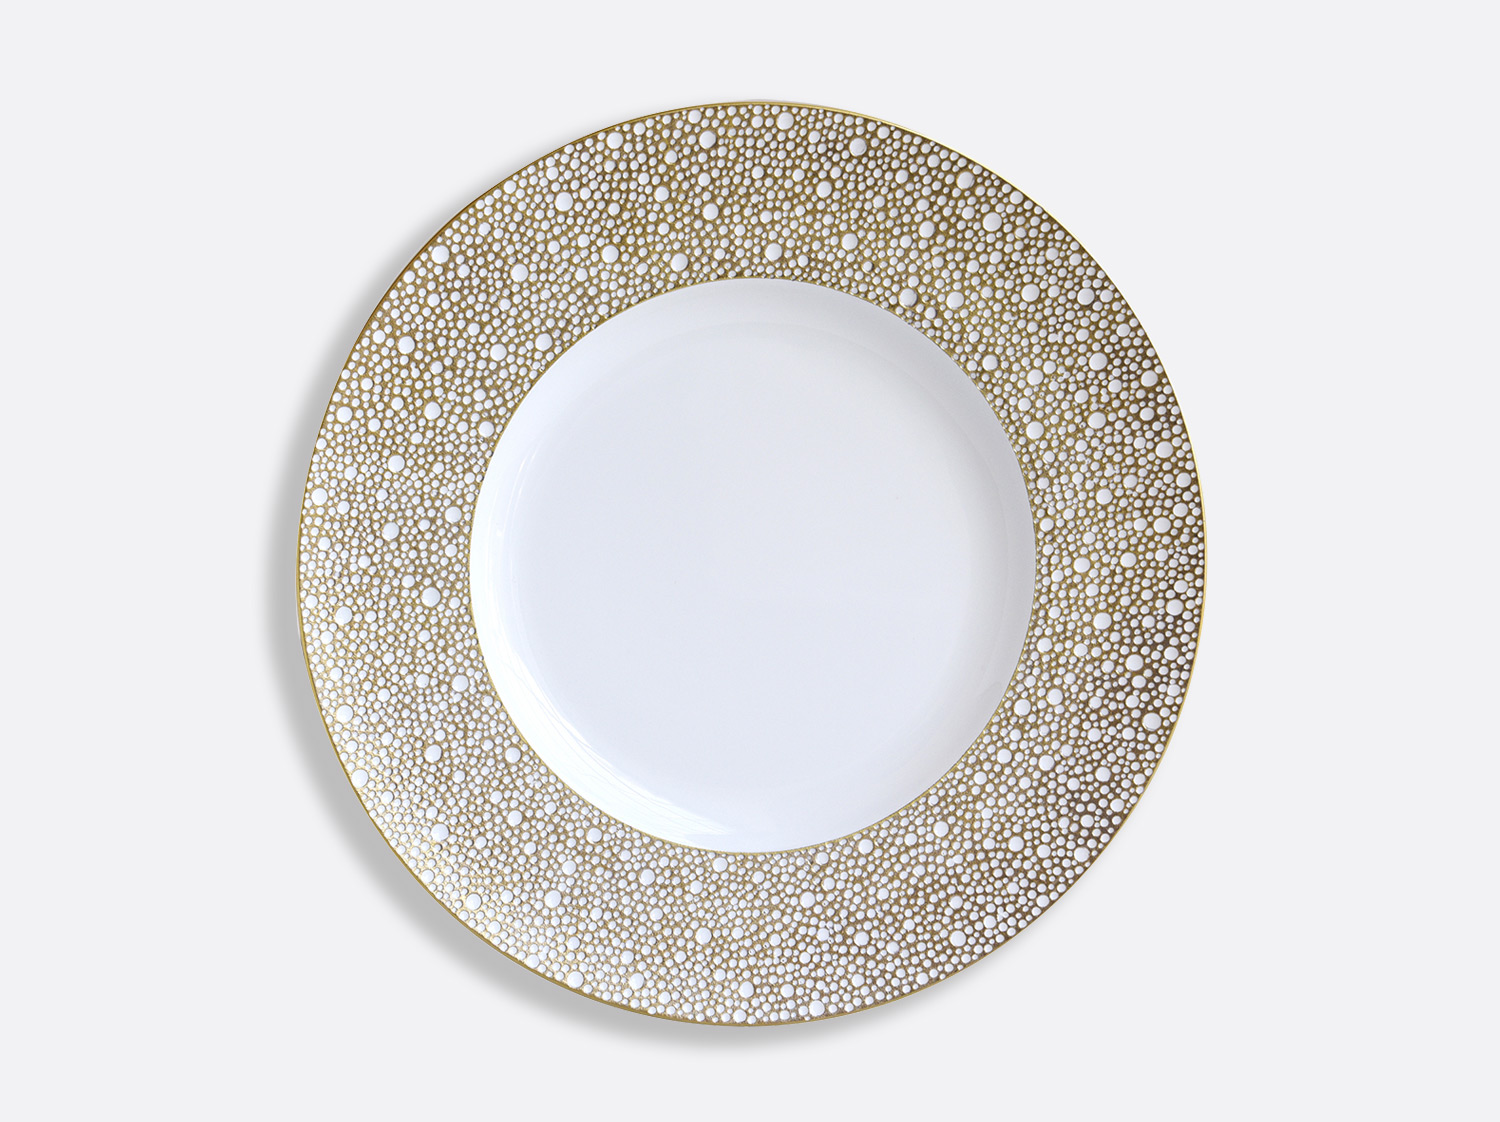 Assiette plate 31,5 cm en porcelaine de la collection Ecume Mordoré Bernardaud